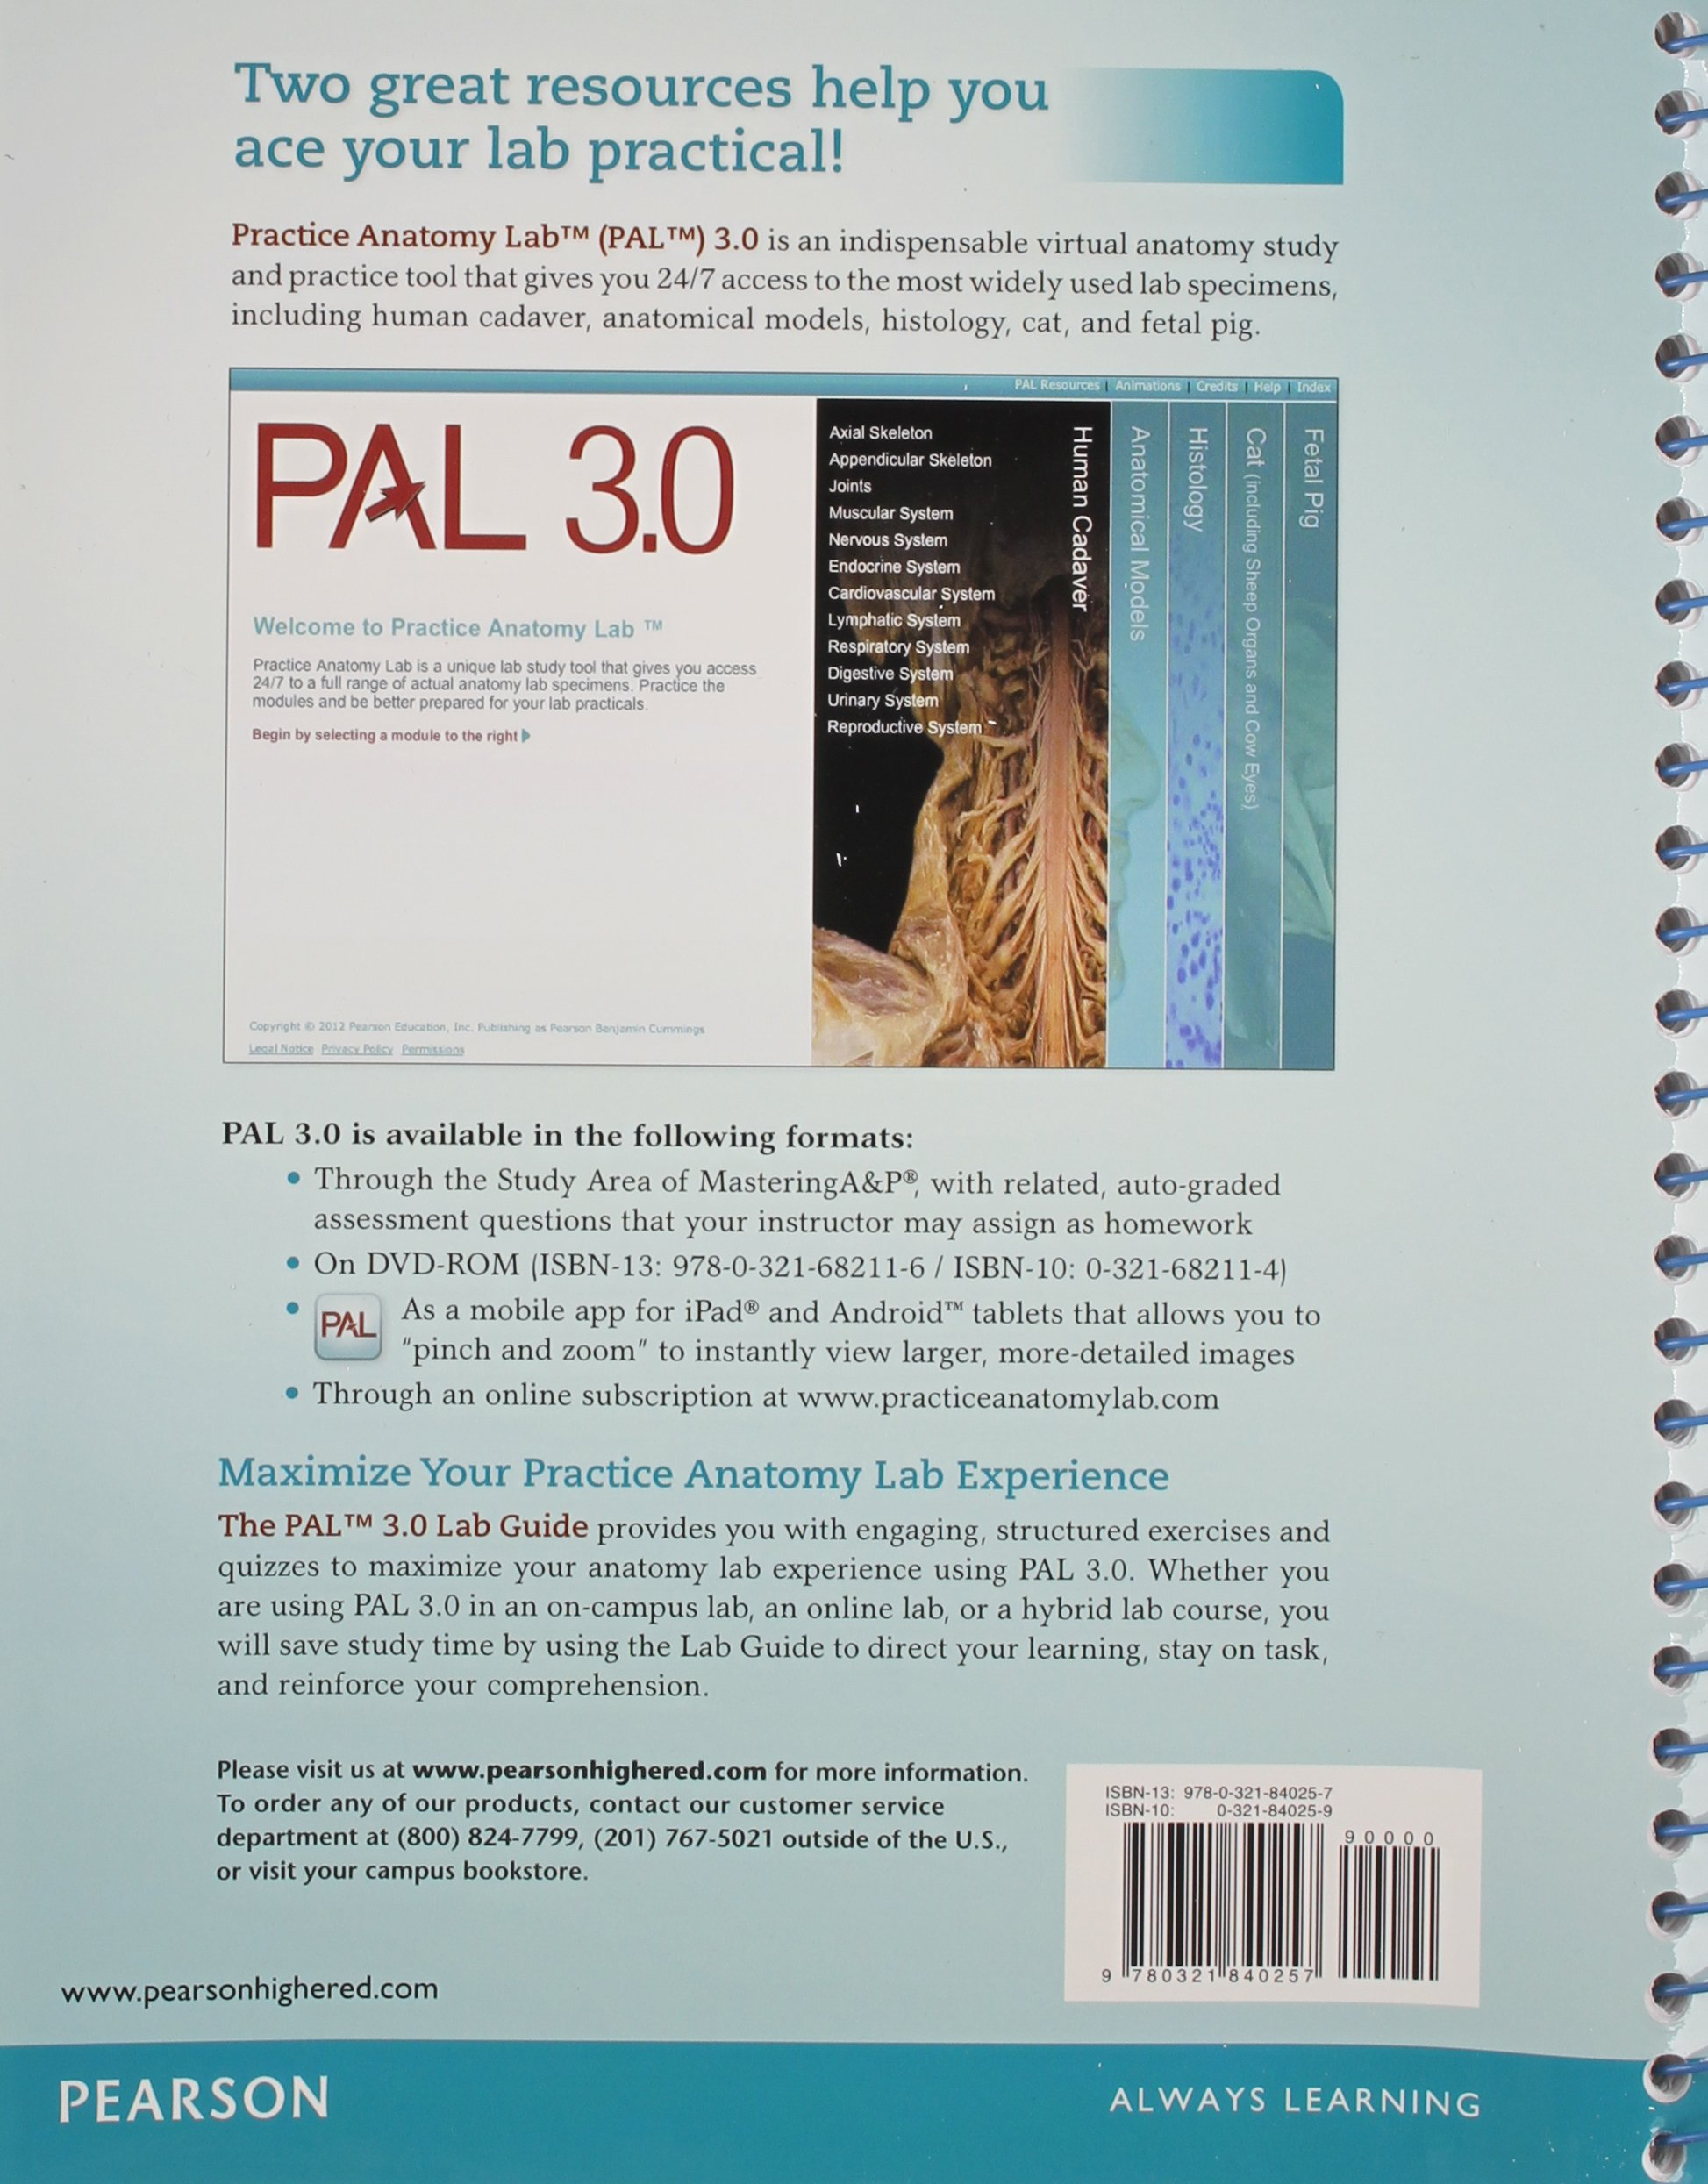 Practice Anatomy Lab 3.0 Lab Guide with PAL 3.0 DVD: Amazon.co.uk ...